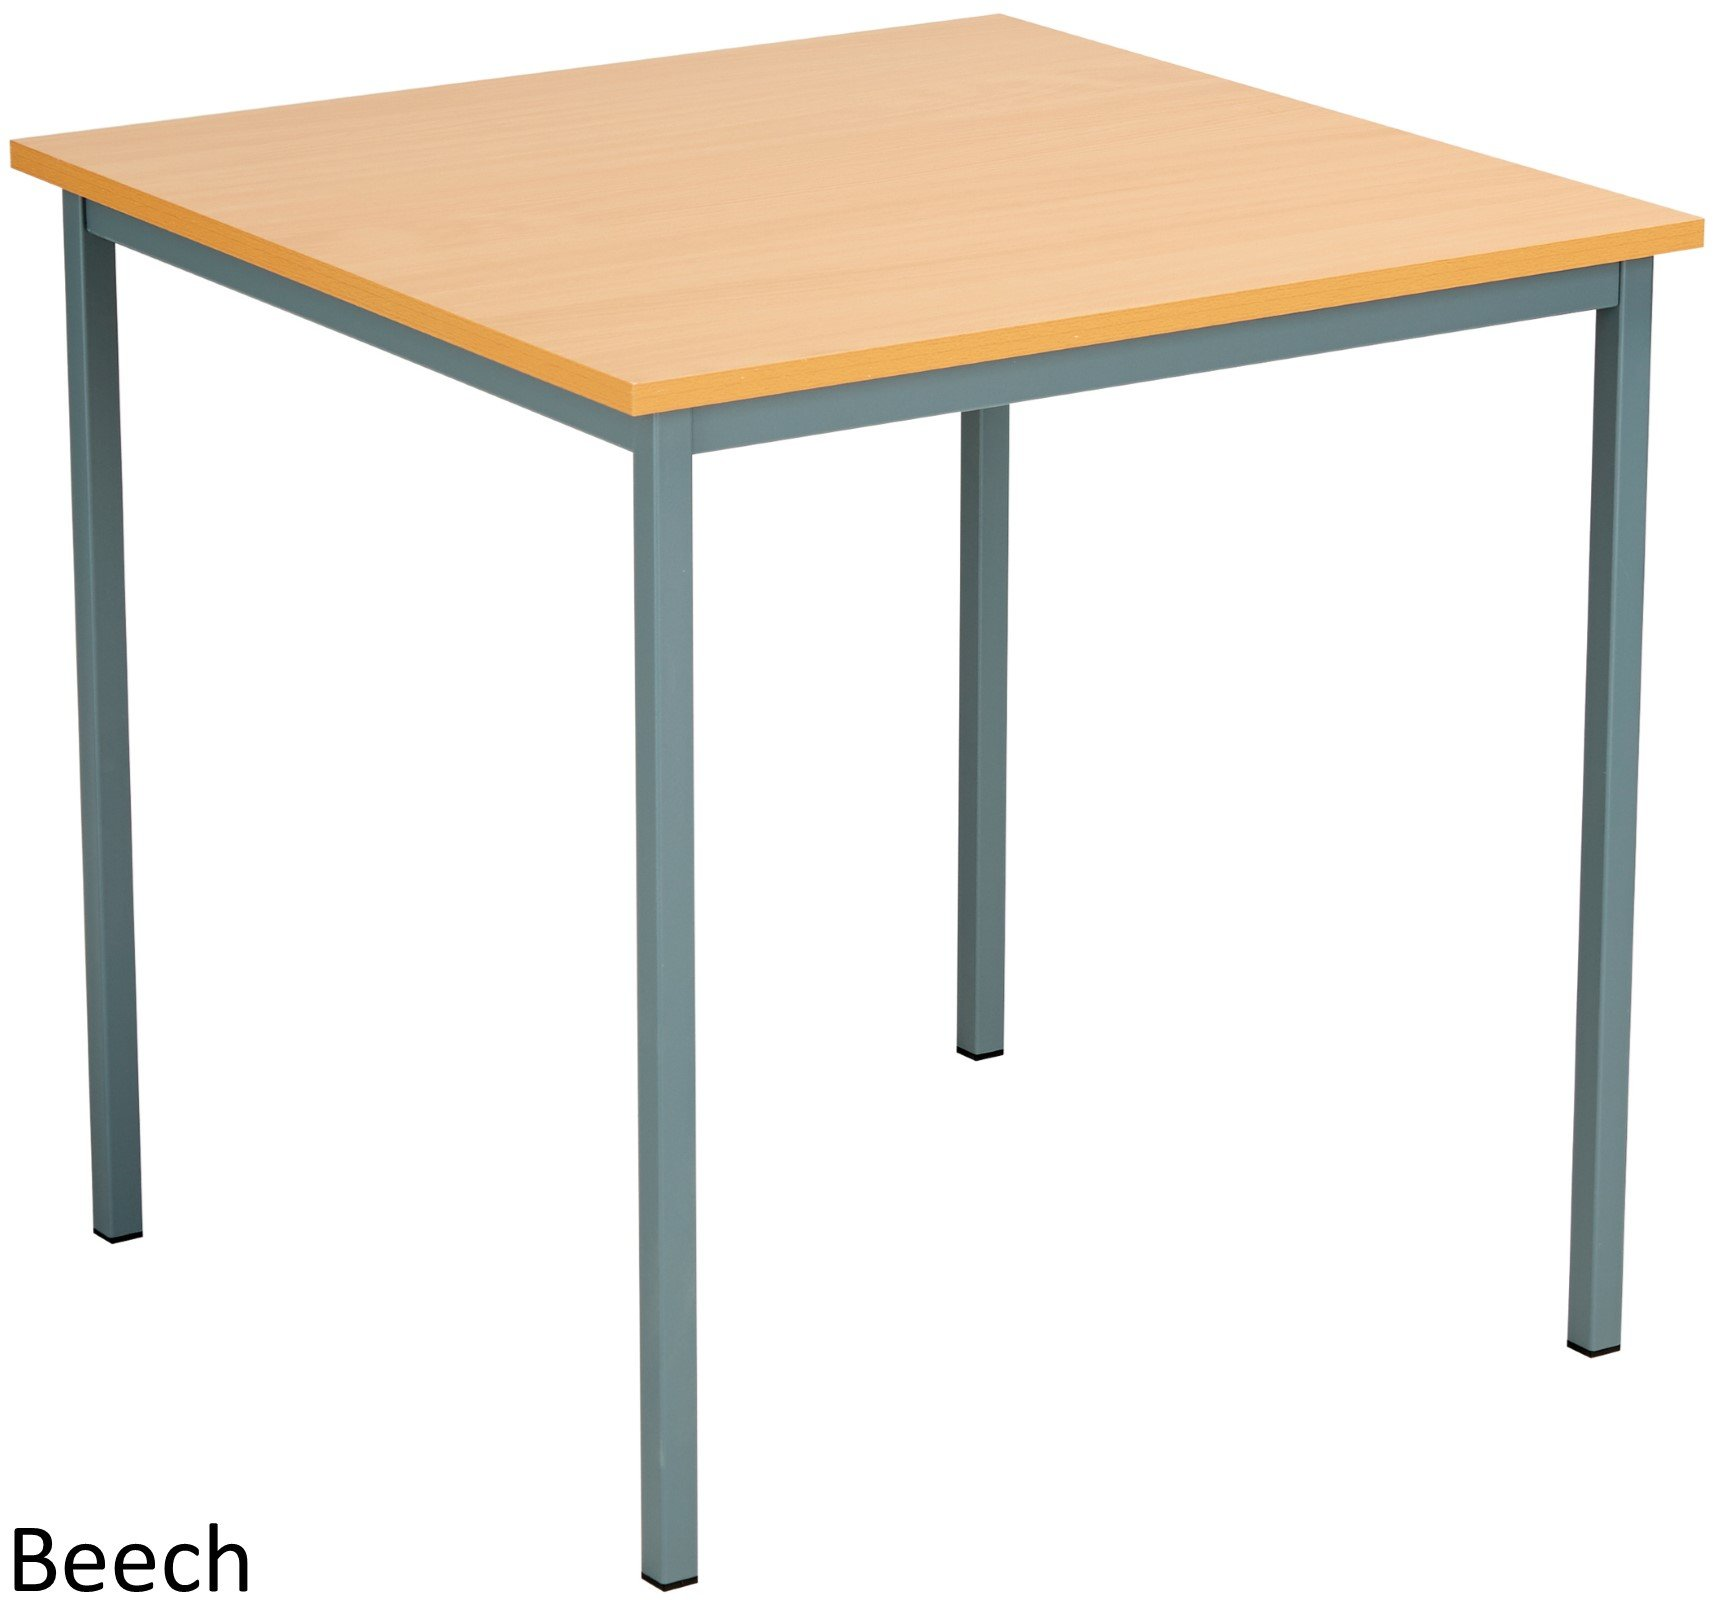 Eco Rectangular Meeting Table - Square meeting table